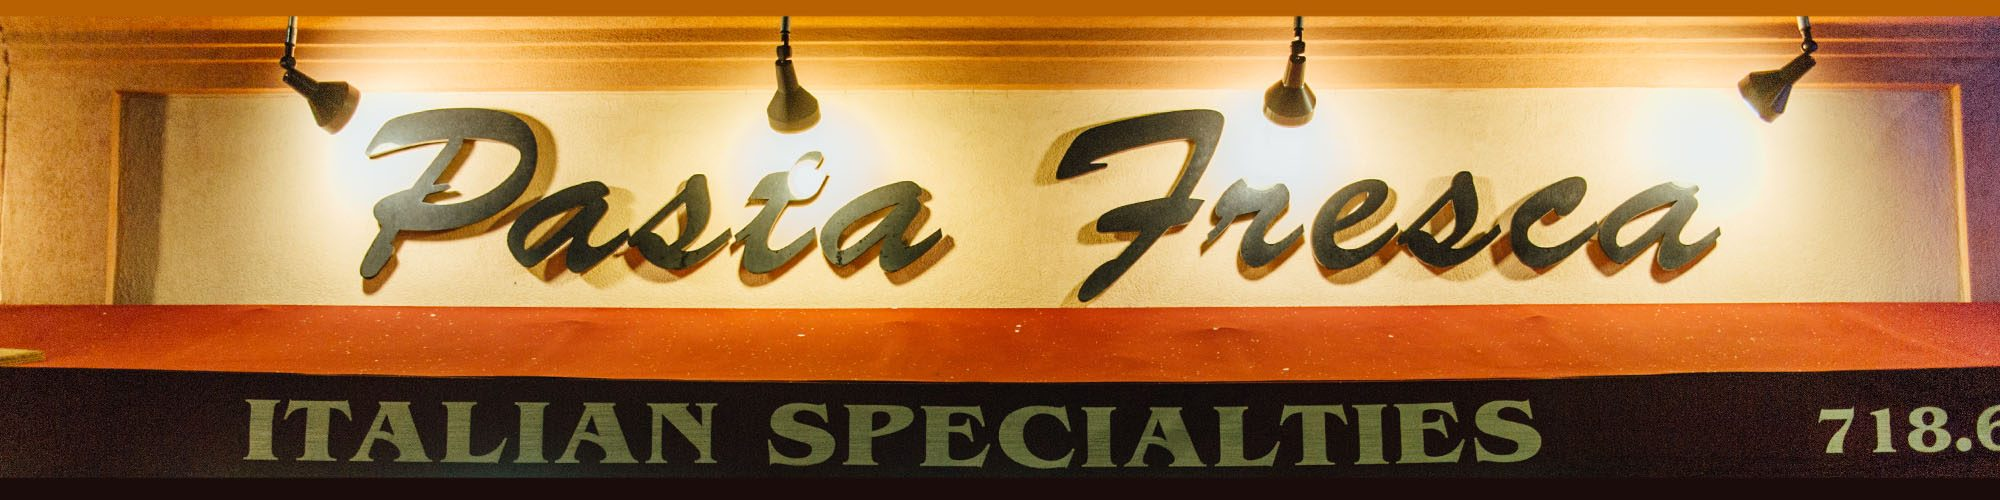 The front sign of Pasta Fresca